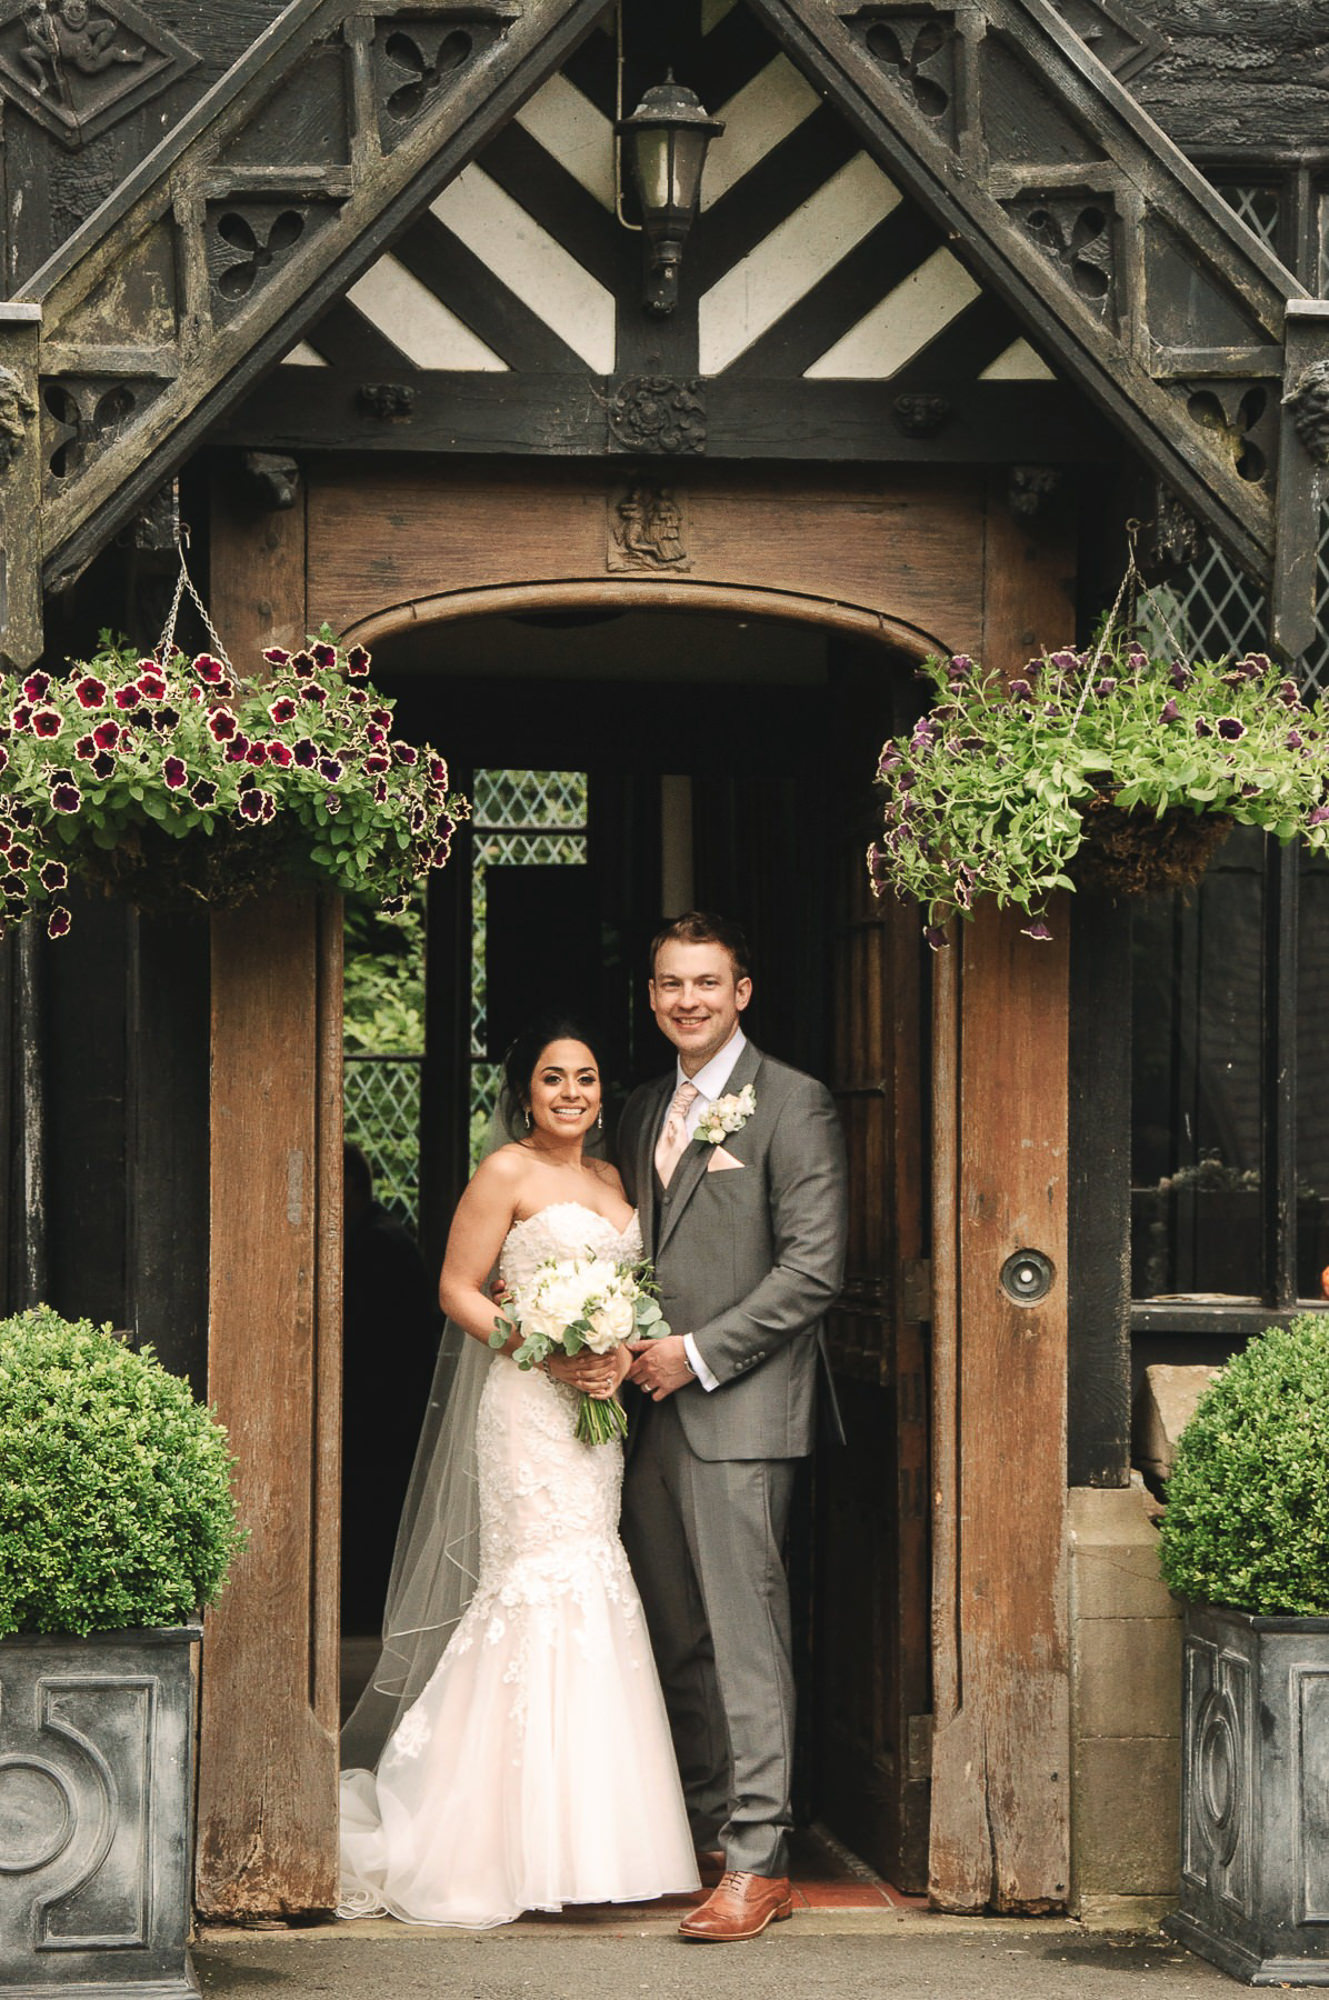 Steeped in amazing History - A true jewel in the crown in Lancashire, Samlesbury Hall's amazing grounds, period buildings, shepherds hut accommodation and maybe even a ghost or two, make this one of Lancashire most popular wedding venues.